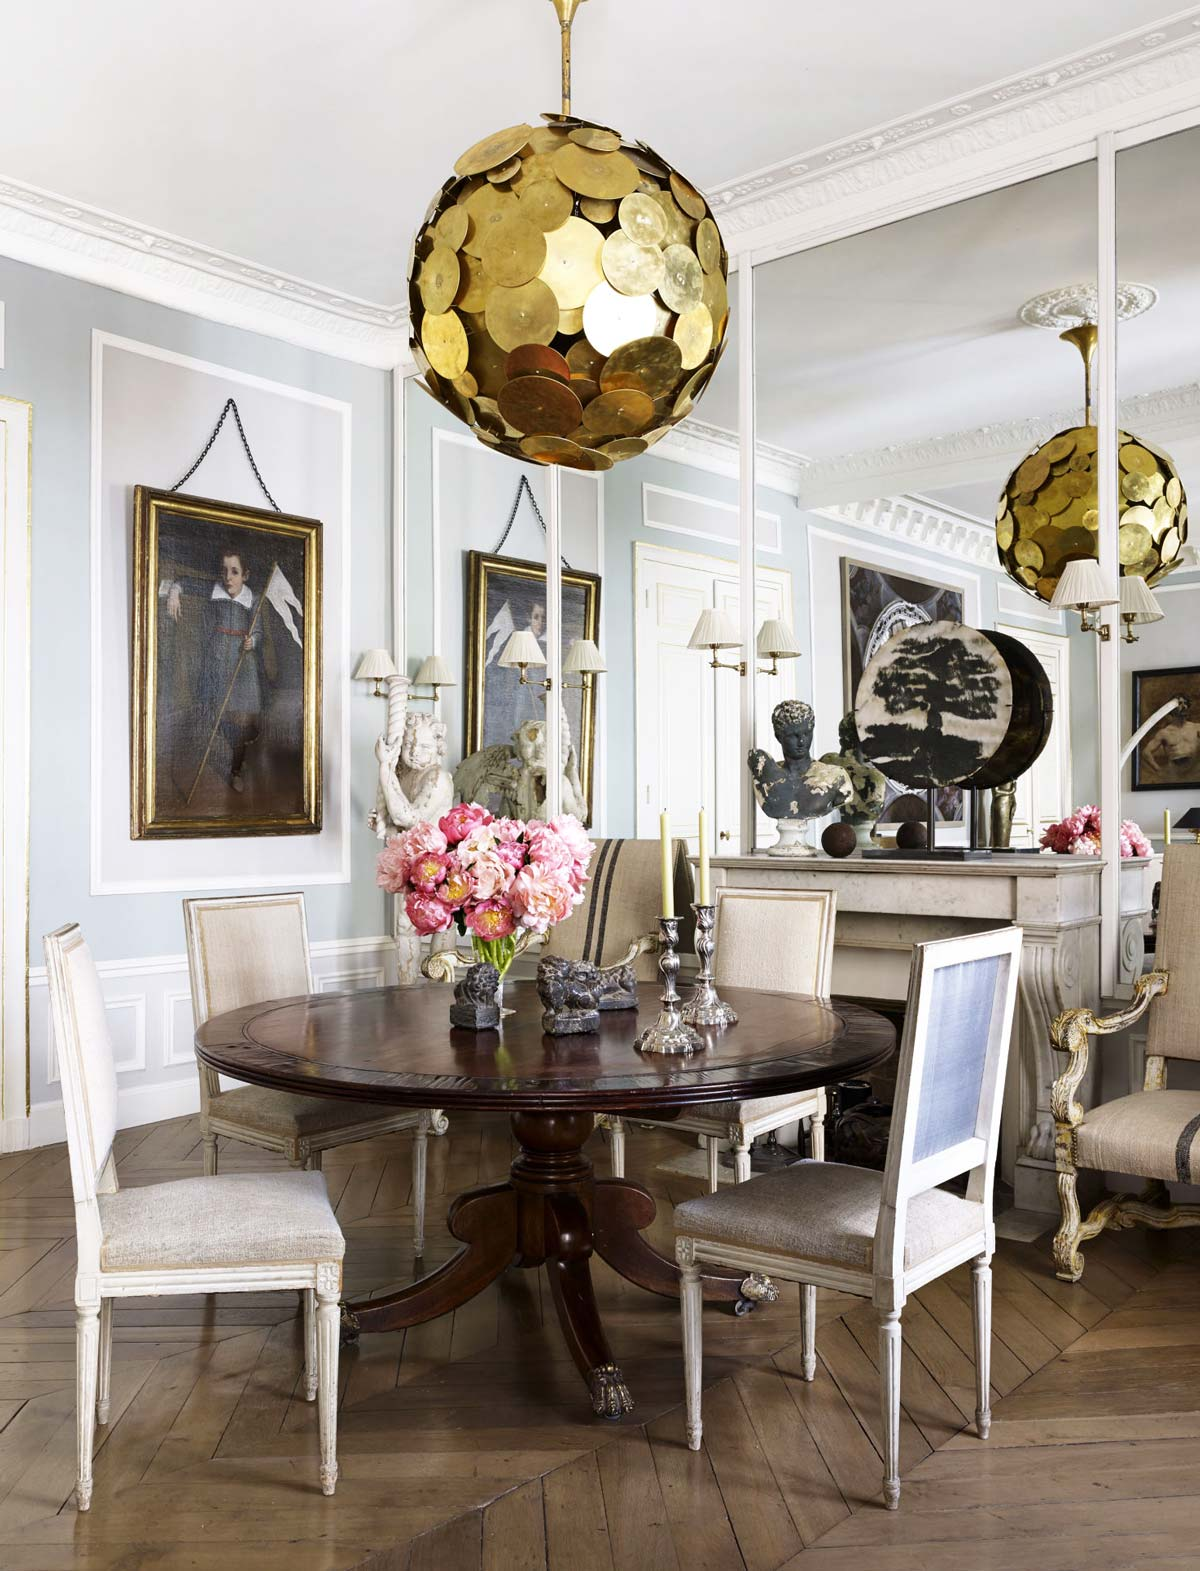 High Quality SWELL SHOPPING: ELEGANT DINING ROOM